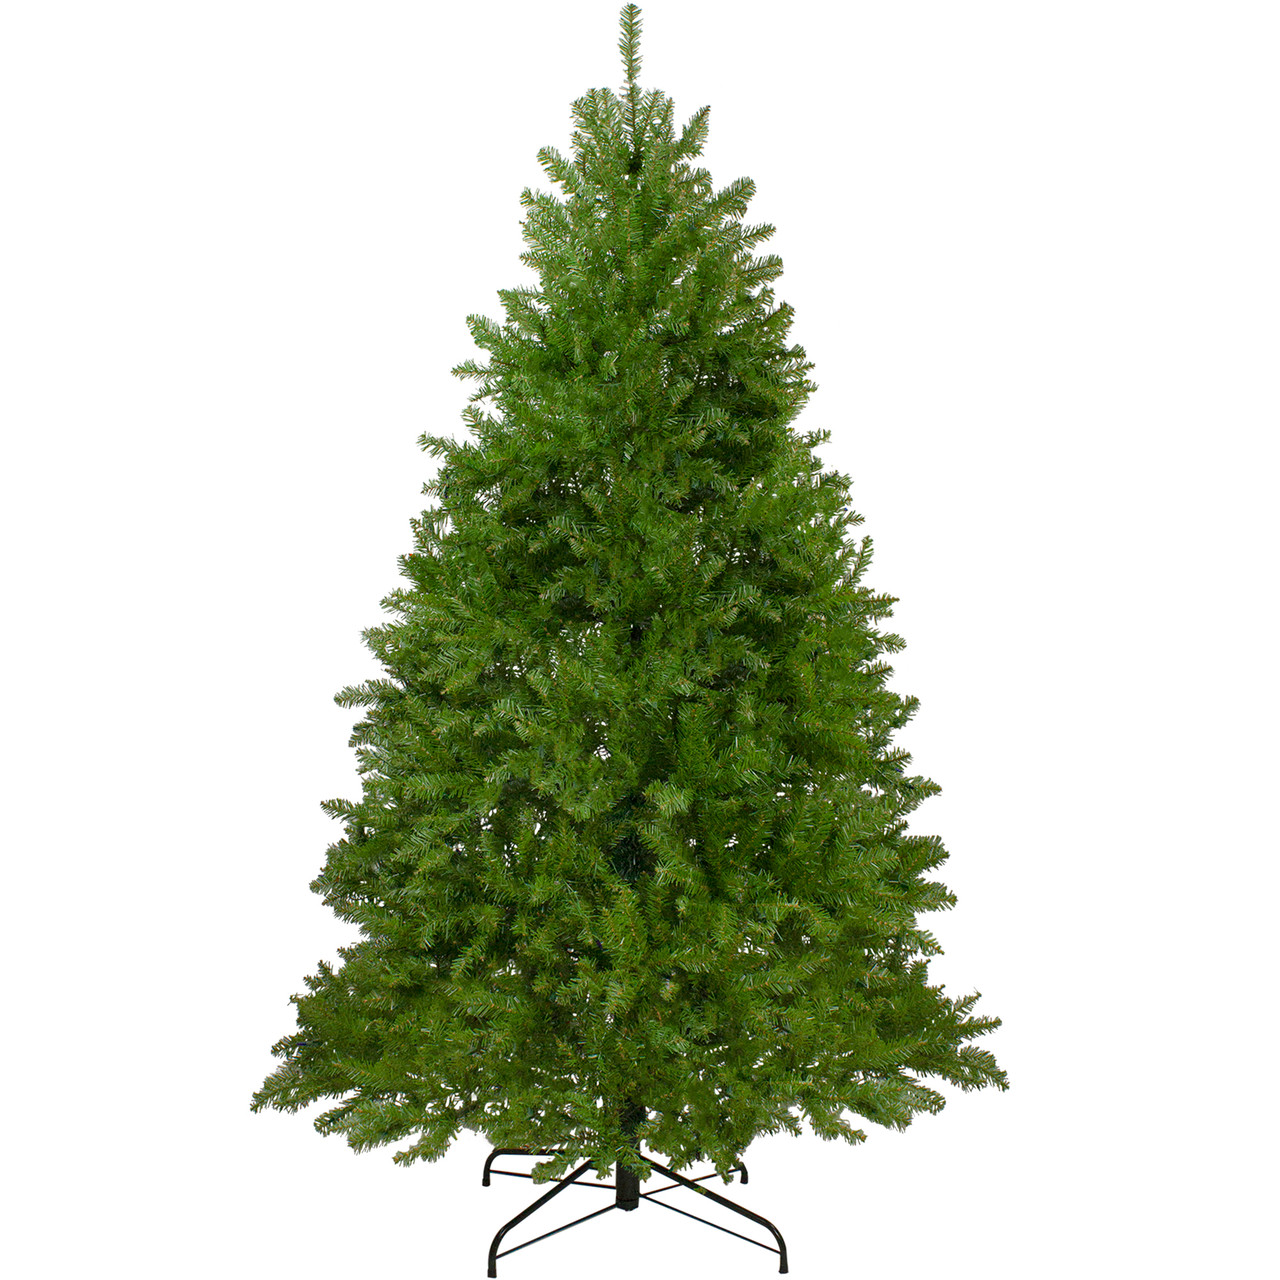 Are Artificial Christmas Trees Safe: 12' Northern Pine Full Artificial Christmas Tree